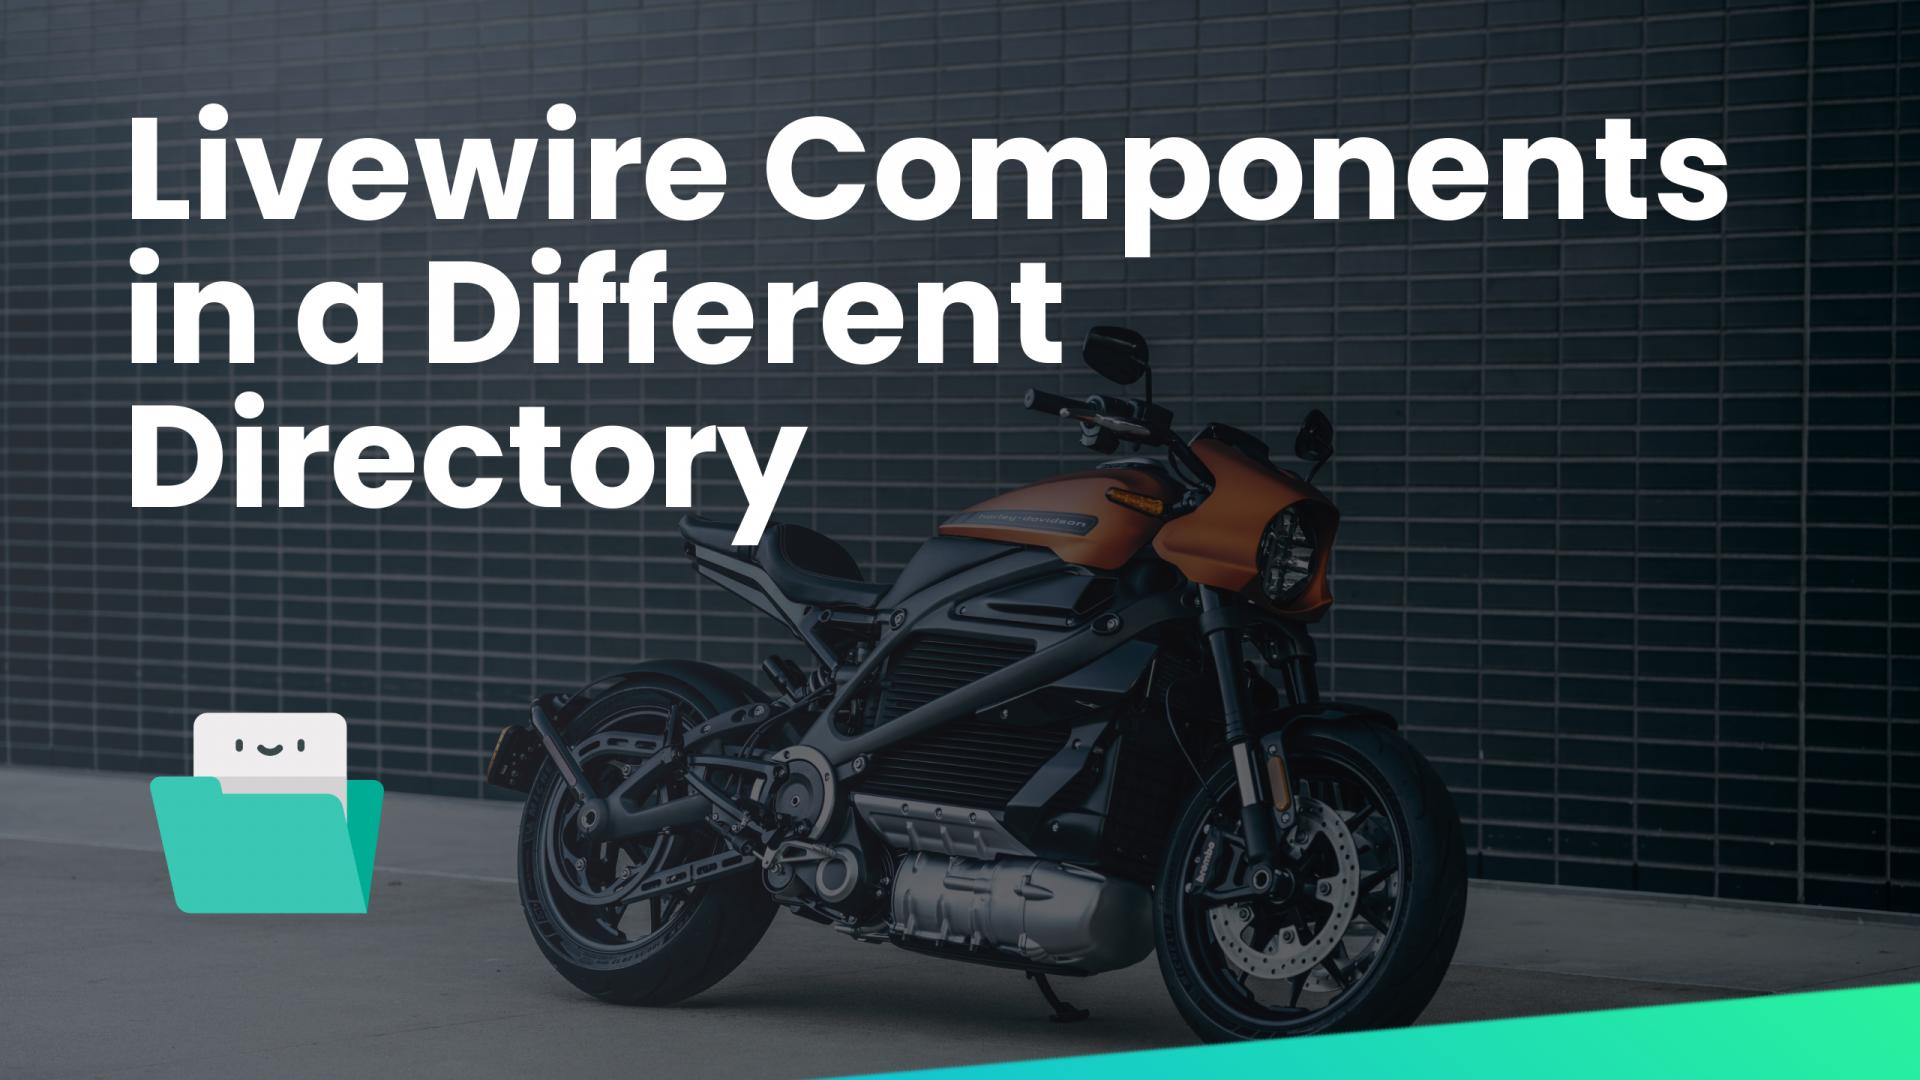 Livewire Components in a Different Directory